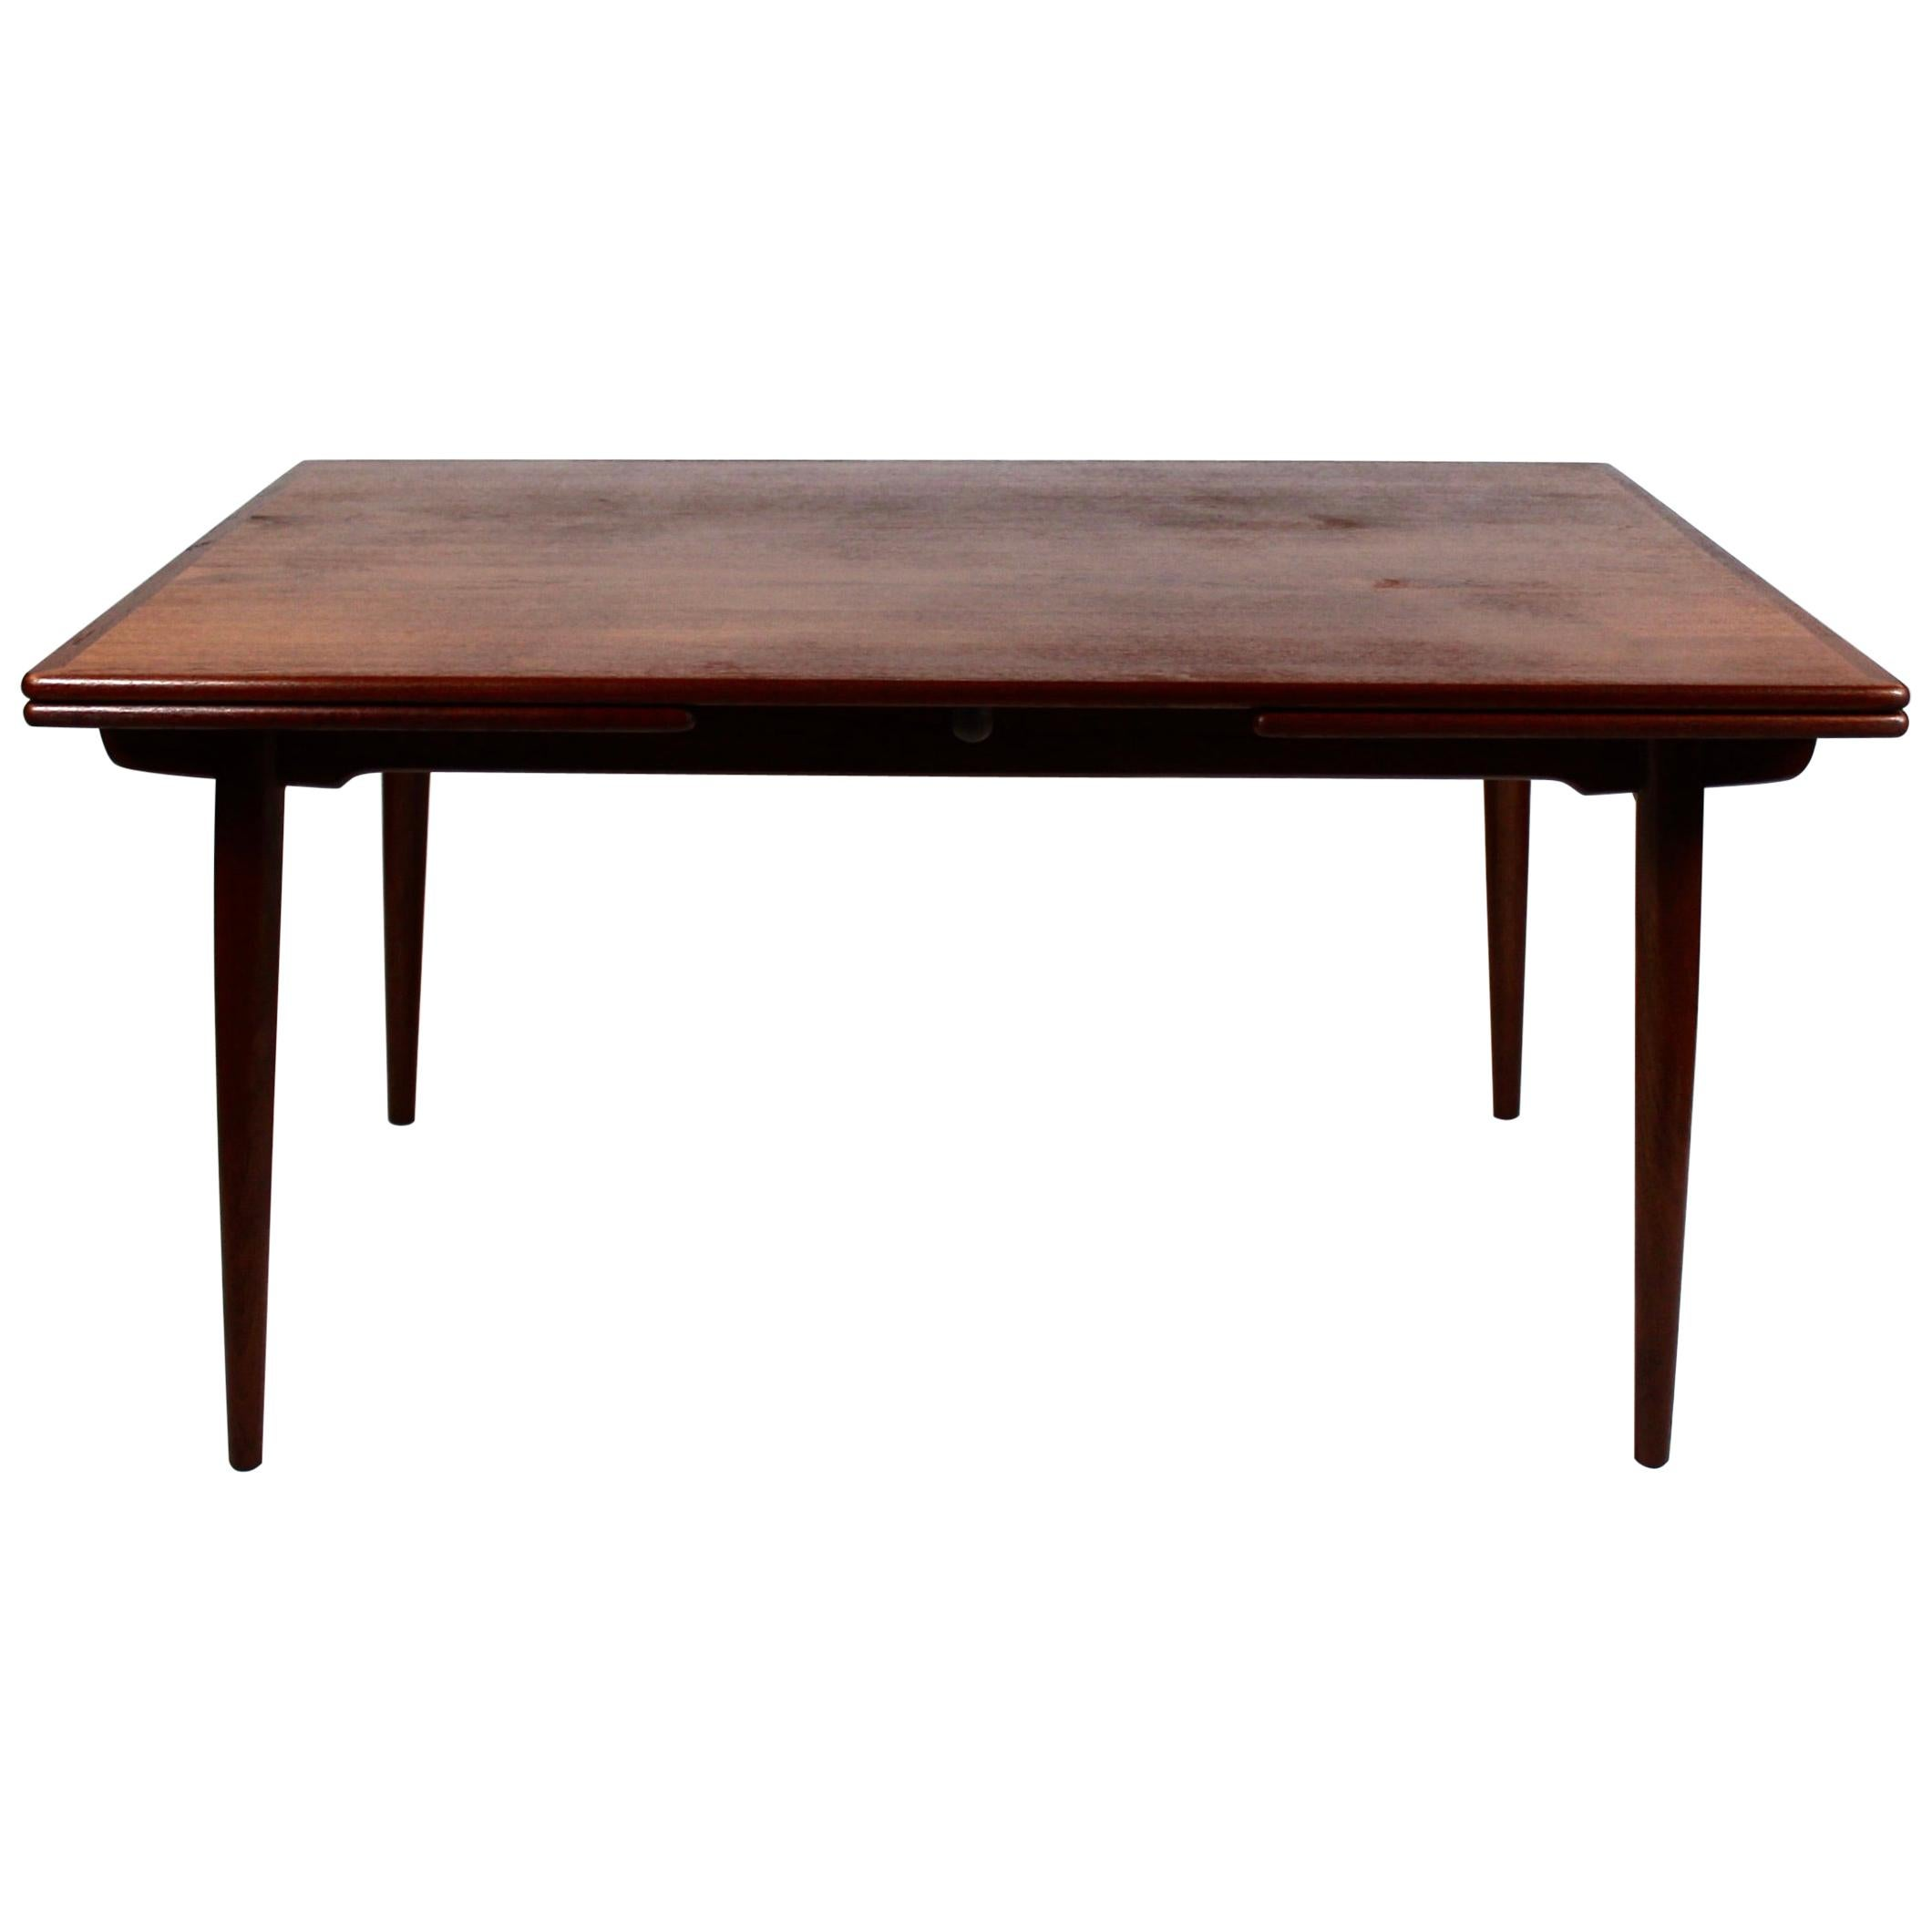 Dining Table with Extensions in Teak Designed by Hans J. Wegner, 1960s